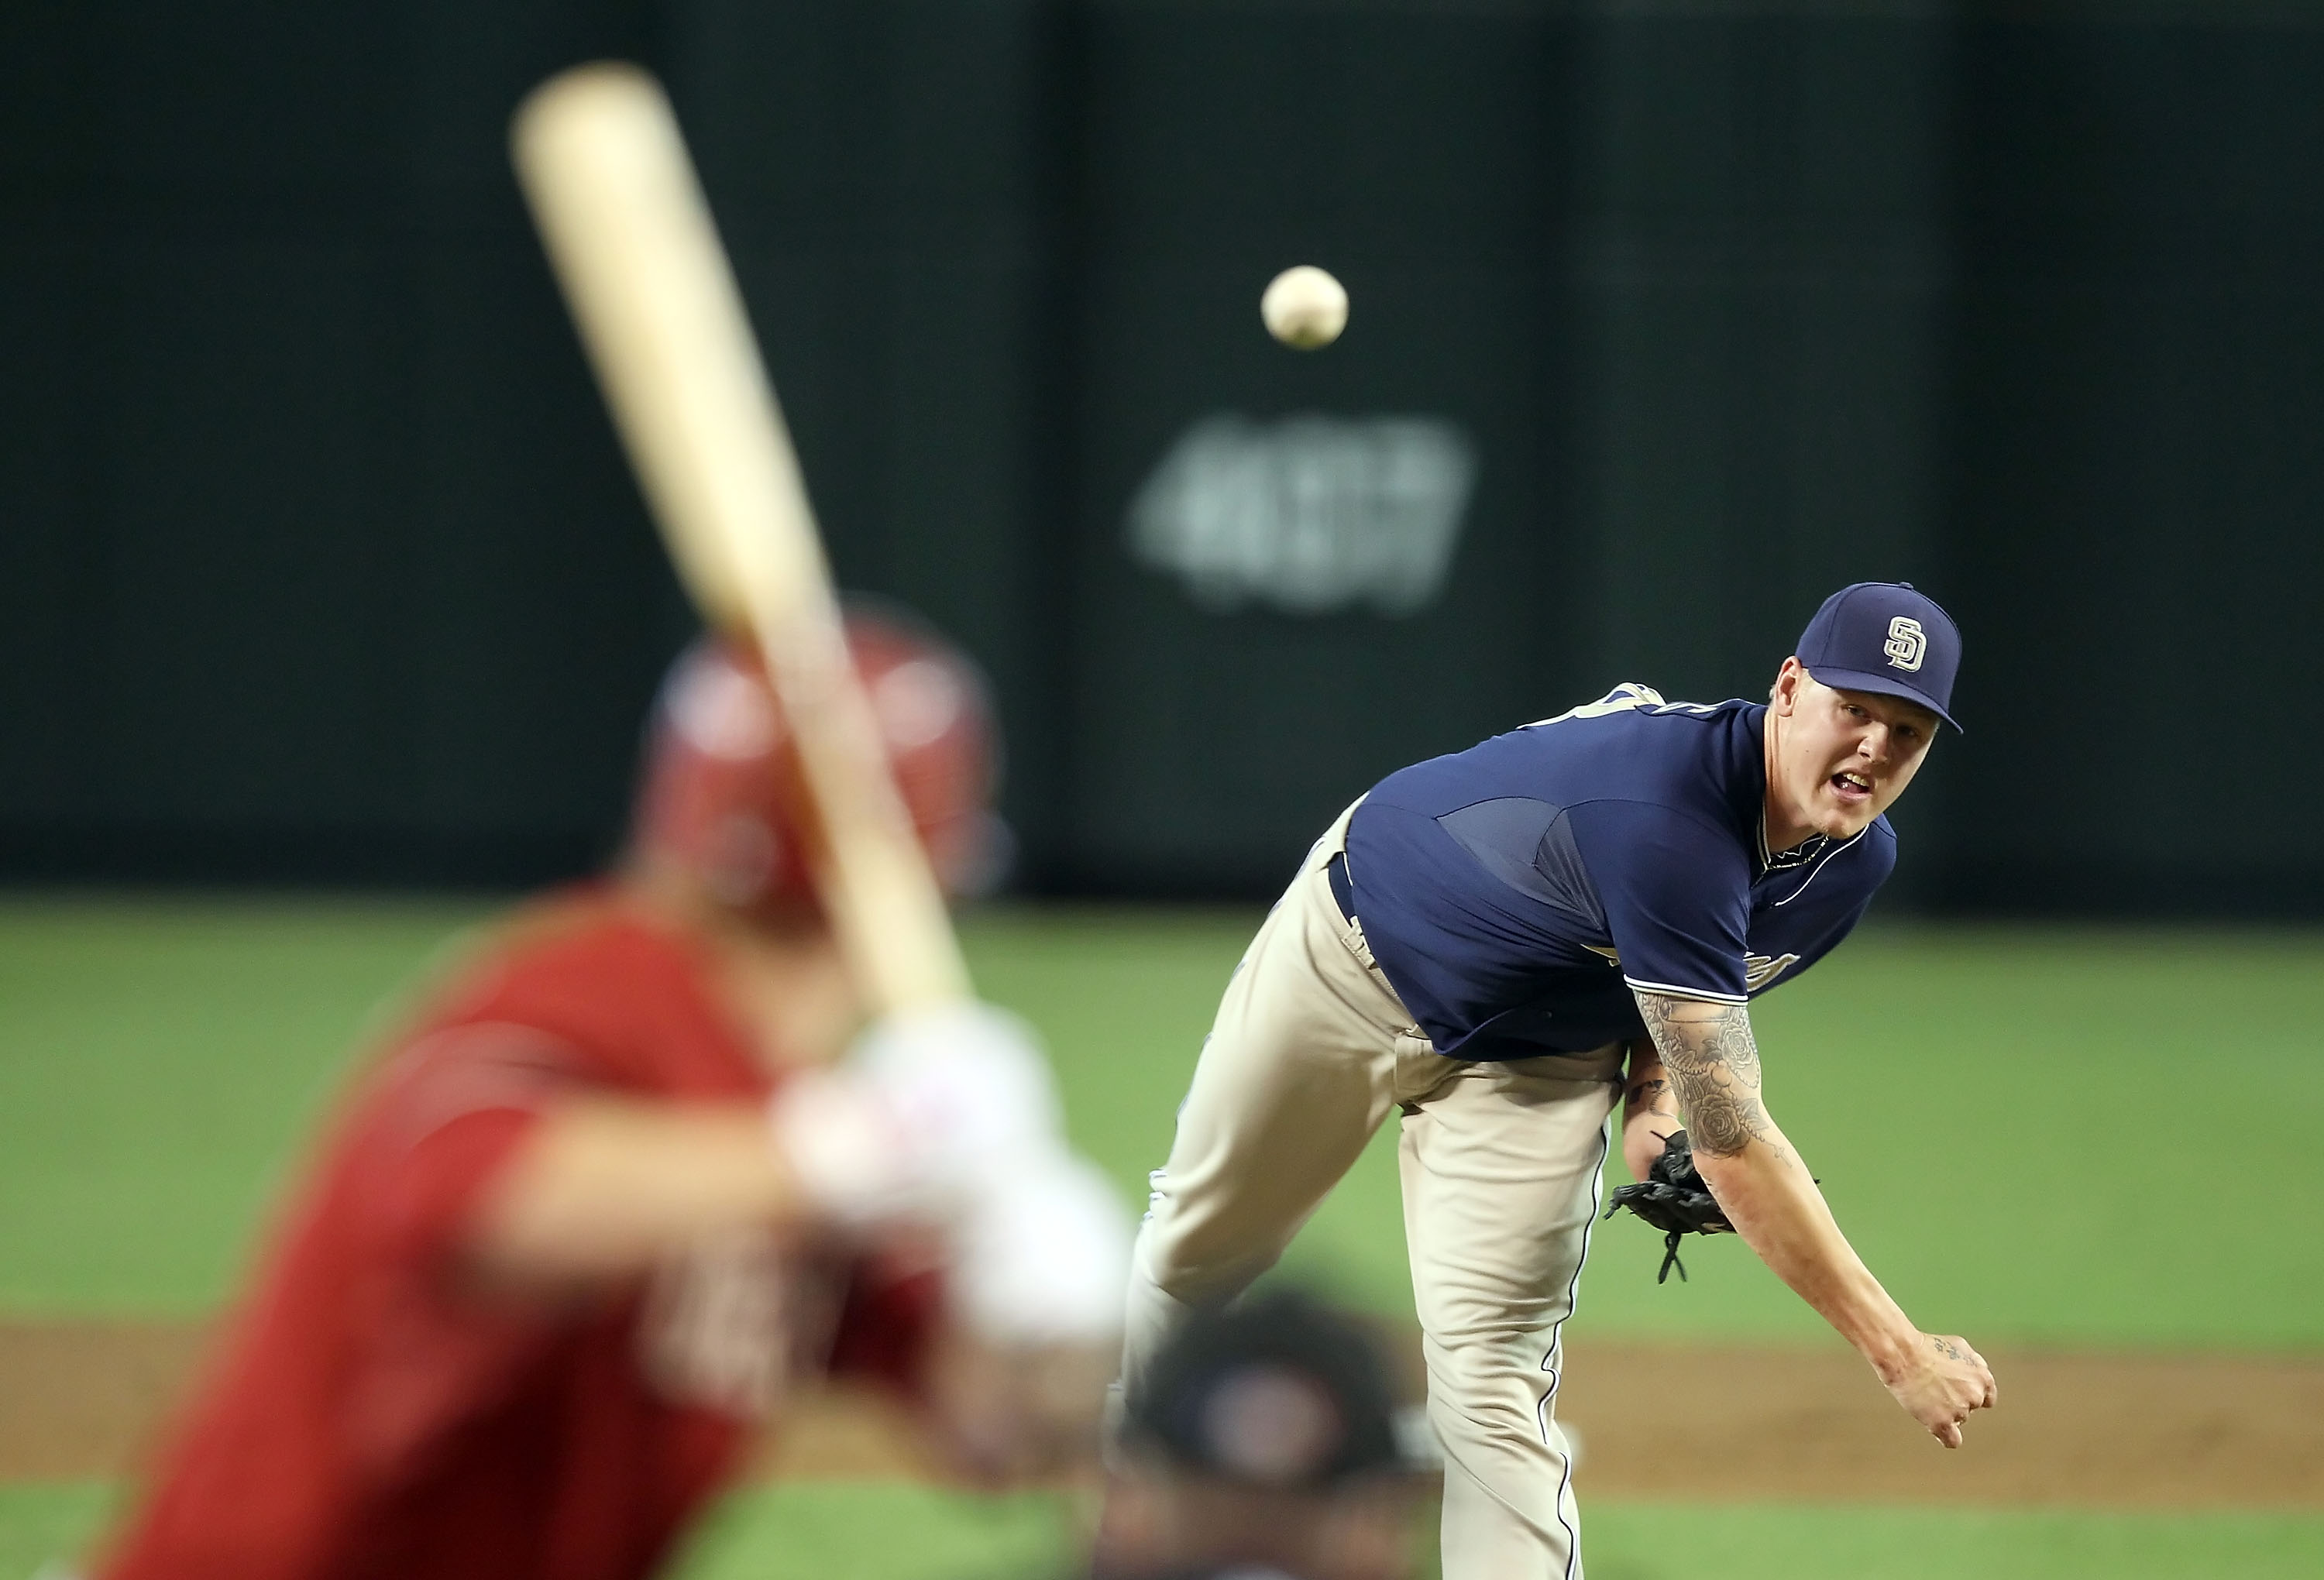 PHOENIX - SEPTEMBER 01:  Starting pitcher Mat Latos #38 of the San Diego Padres pitches against the Arizona Diamondbacks during the Major League Baseball game at Chase Field on September 1, 2010 in Phoenix, Arizona. The Diamondbacks defeated the Padres 5-